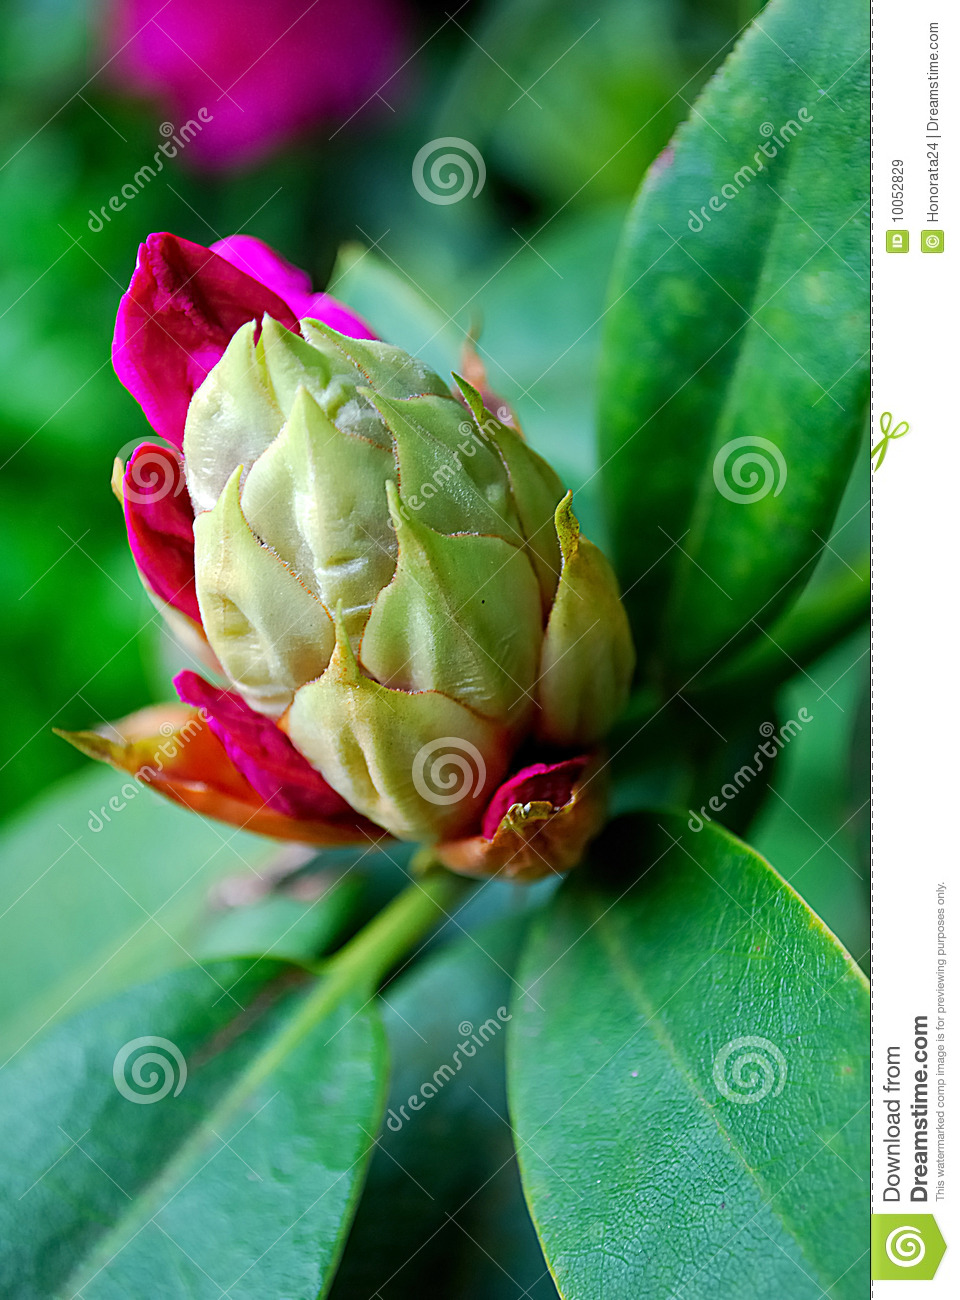 Rhododendronblume